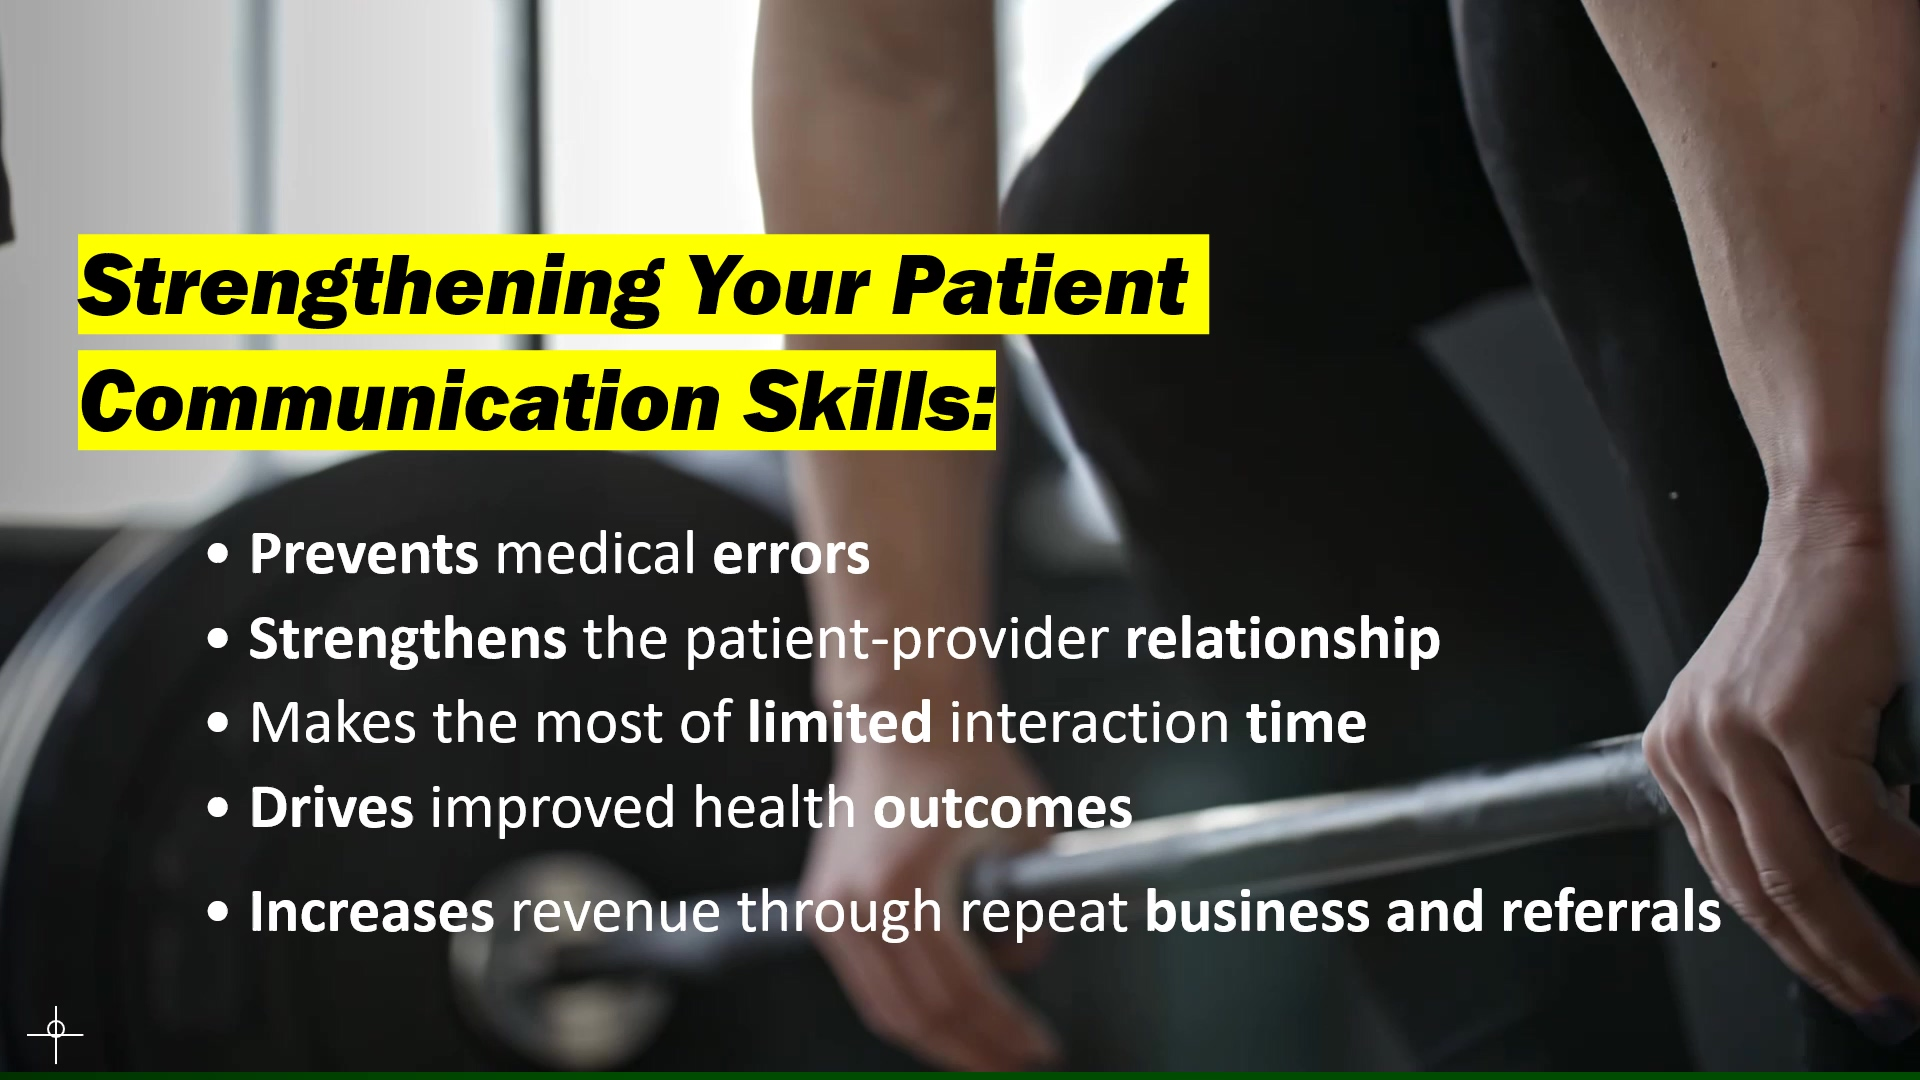 Strengthening Your Patient Communication Skills